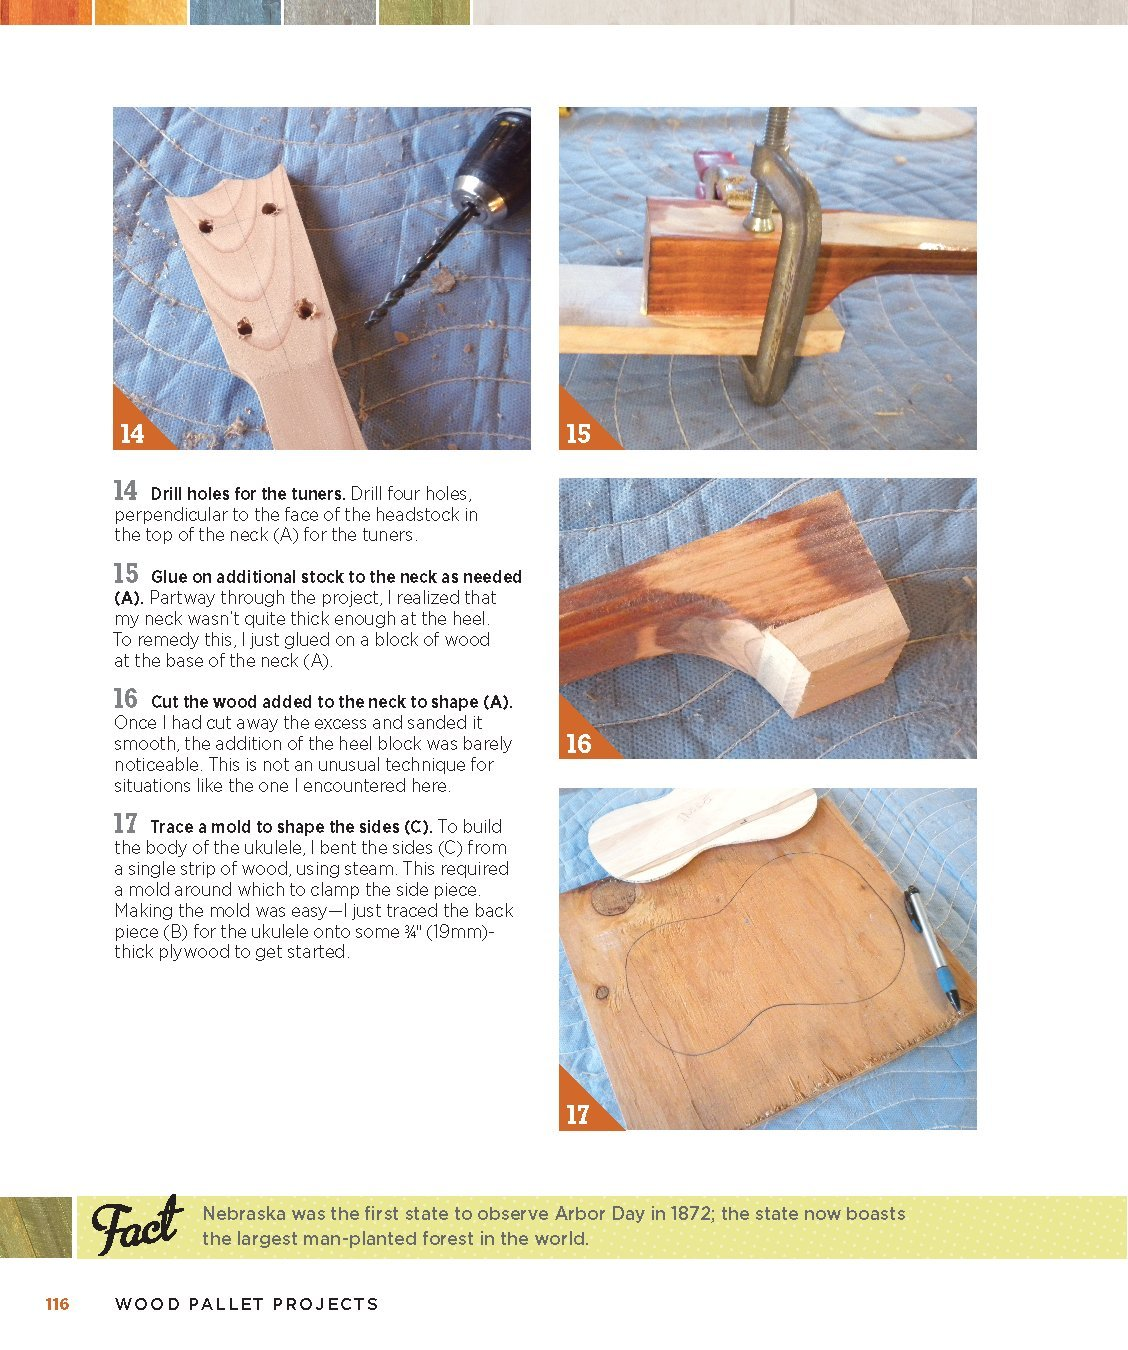 Wood Pallet Projects: Cool and Easy-to-Make Projects for the Home and Garden (Fox Chapel Publishing) Learn How to Upcycle Pallets to Make One-of-a-Kind Furniture & Accessories, from Boxes to a Ukulele